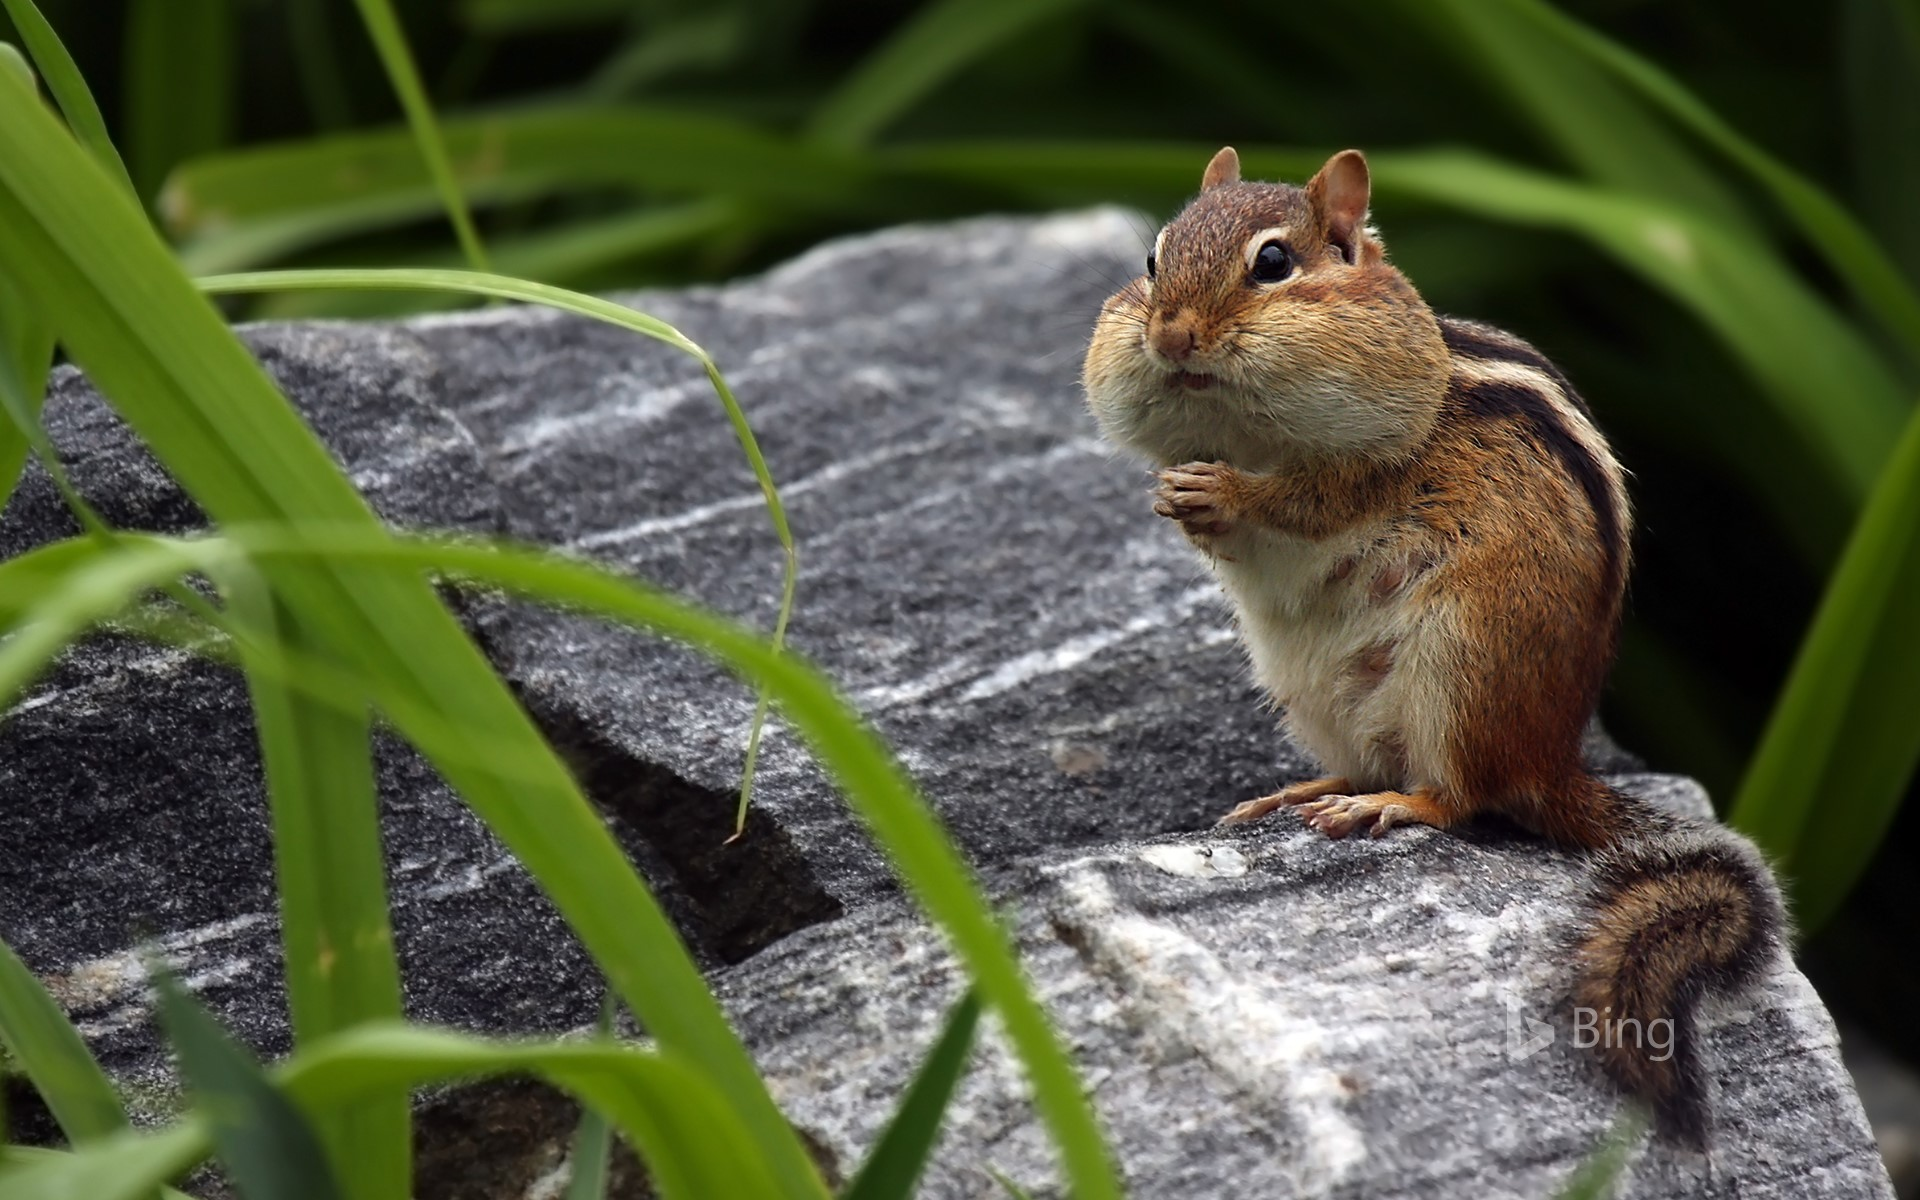 Chipmunk storing food in its cheeks (© mlorenzphotography/Getty Images)